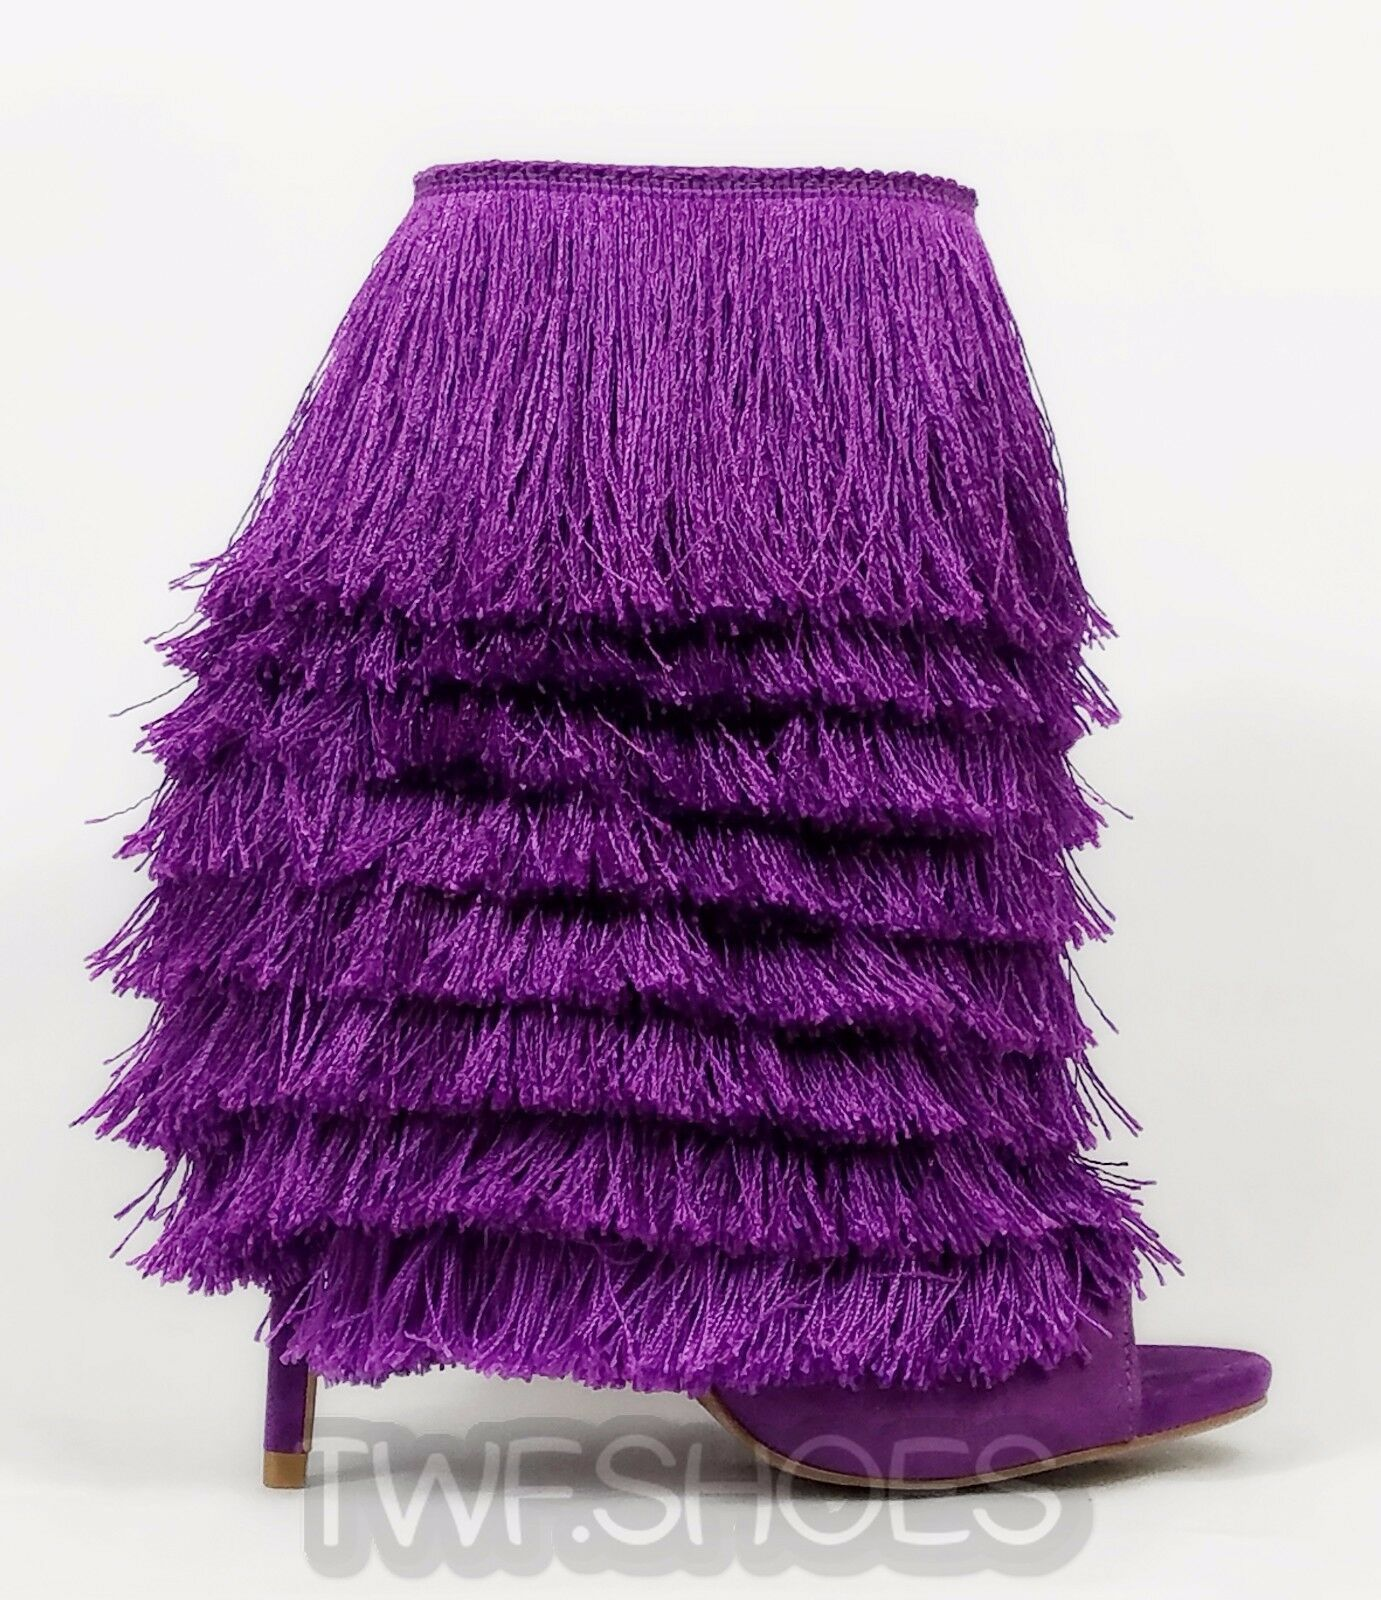 Nelly Bernal Mambo Purple Fun Fringe Open Toe 4.75 Stiletto High Heel Ankle Boot